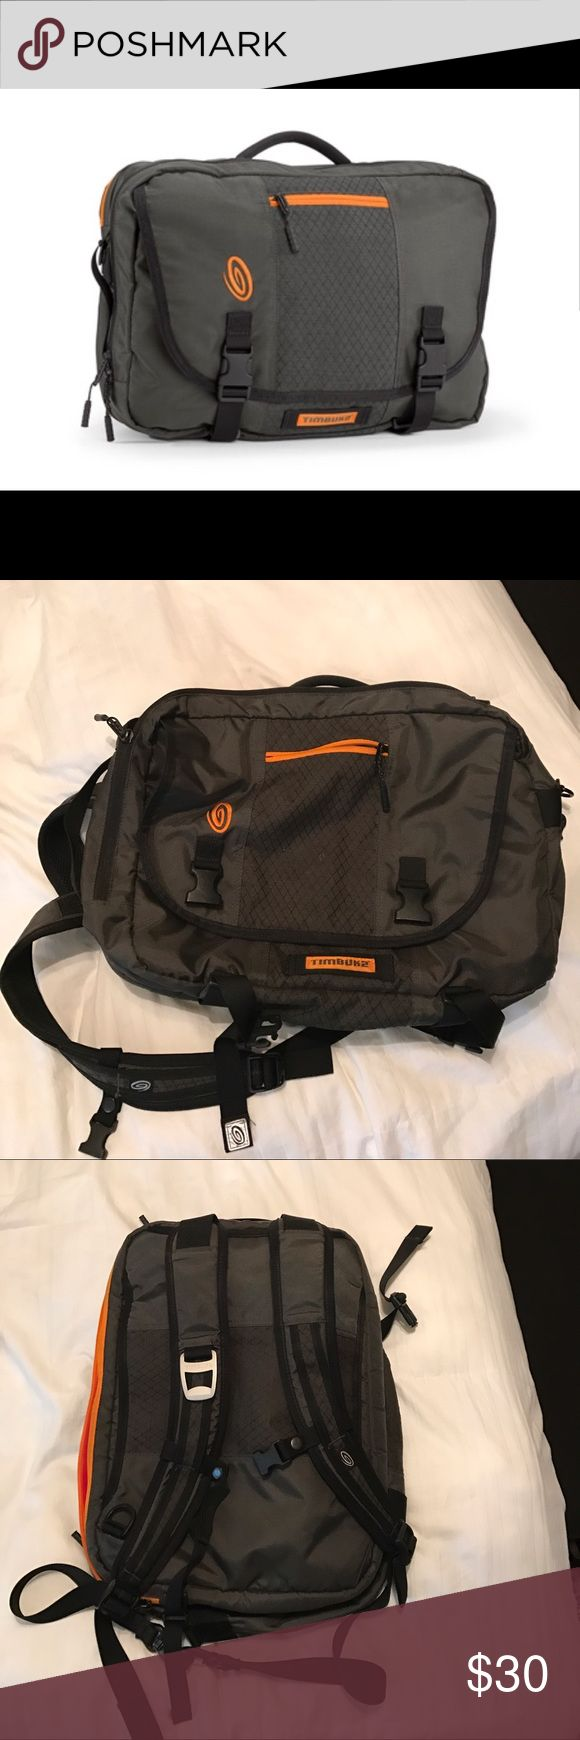 Timbuk2 Backpack Awesome bag with laptop sleeve. Can be worn as a backpack or carried as a messenger bag. Last picture is a different color but shows how it can be worn on your back. These are great durable bags! No rips or stains Timbuk2 Bags Backpacks